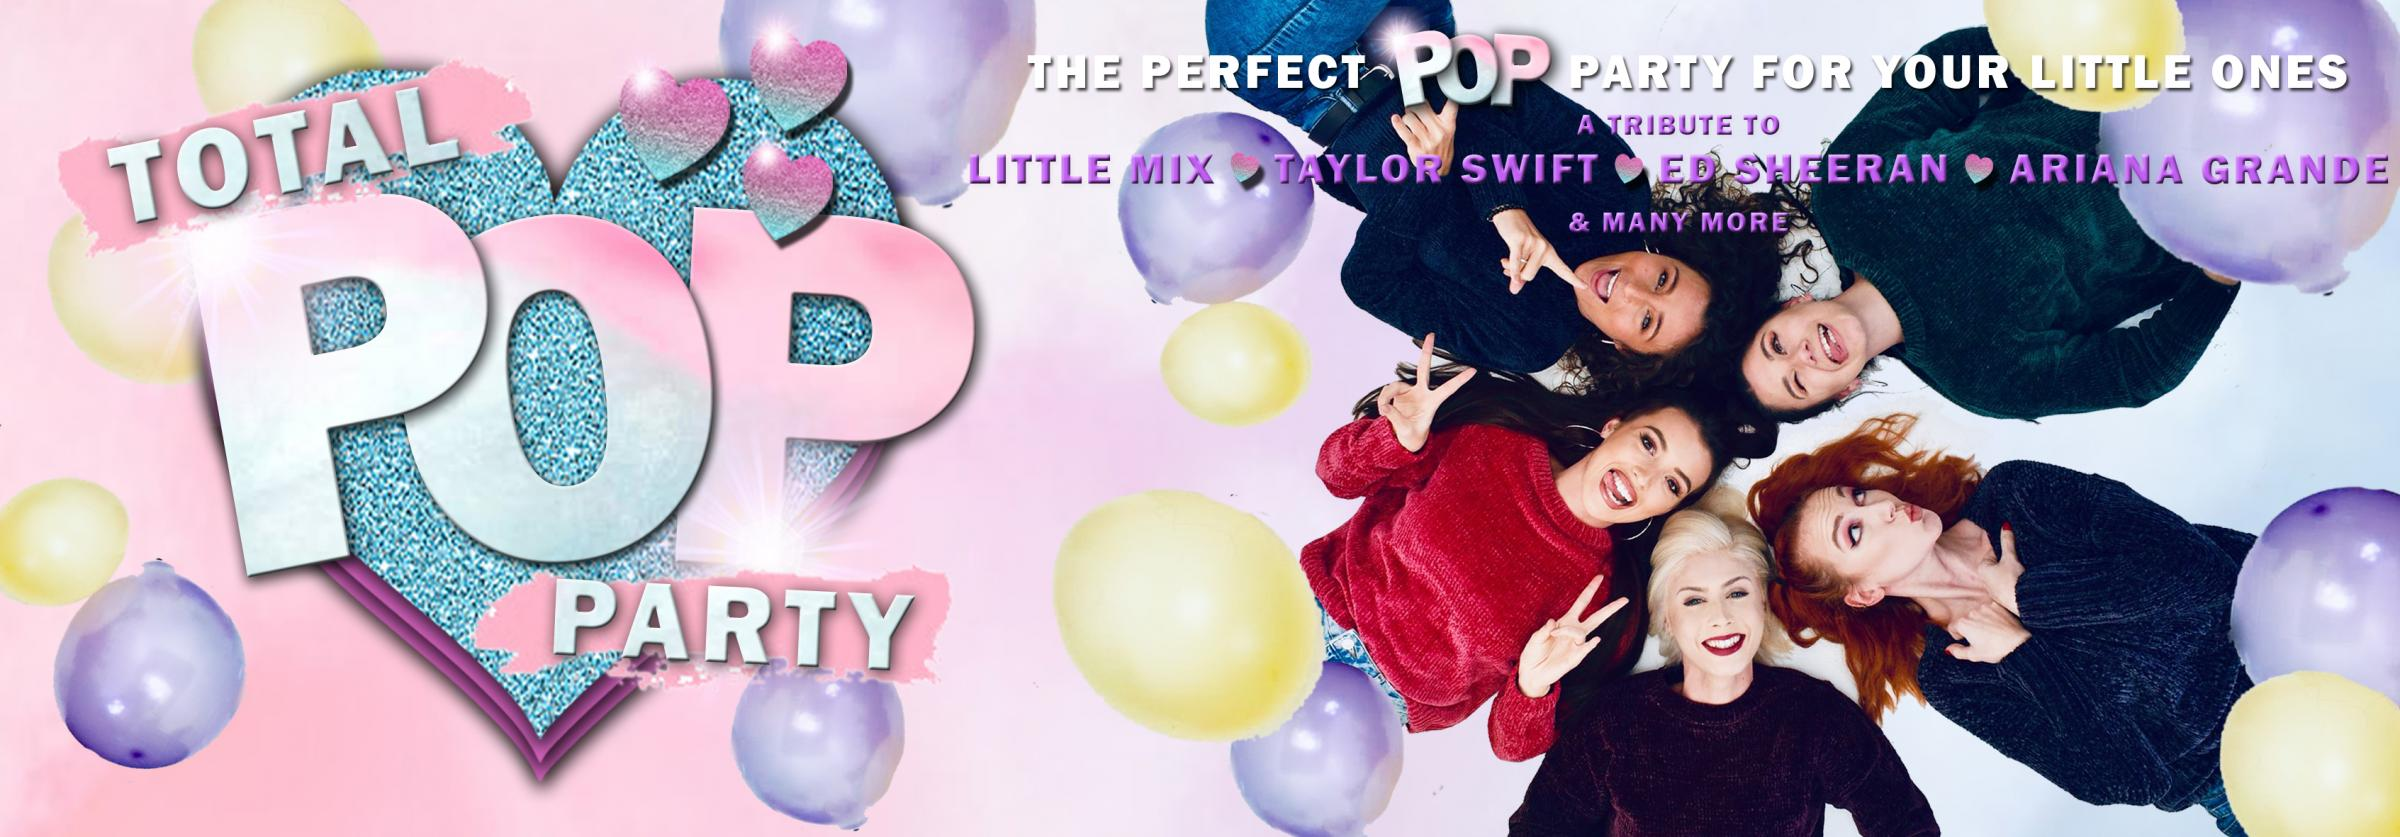 Total Pop Party